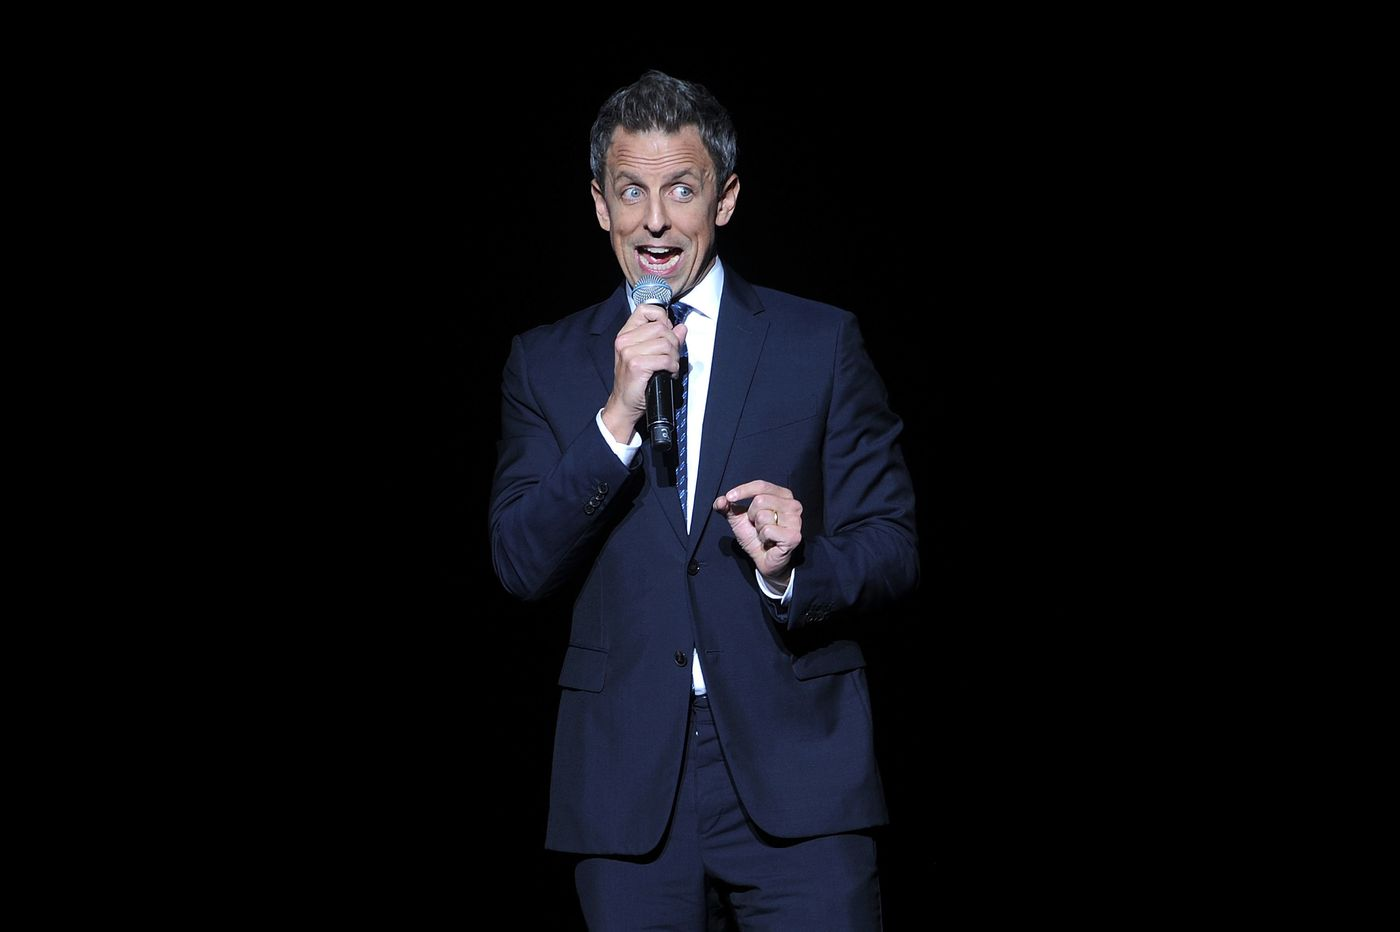 7 days of things to do Feb. 17 to 23: See Seth Meyers, Vince Staples, or cute animals